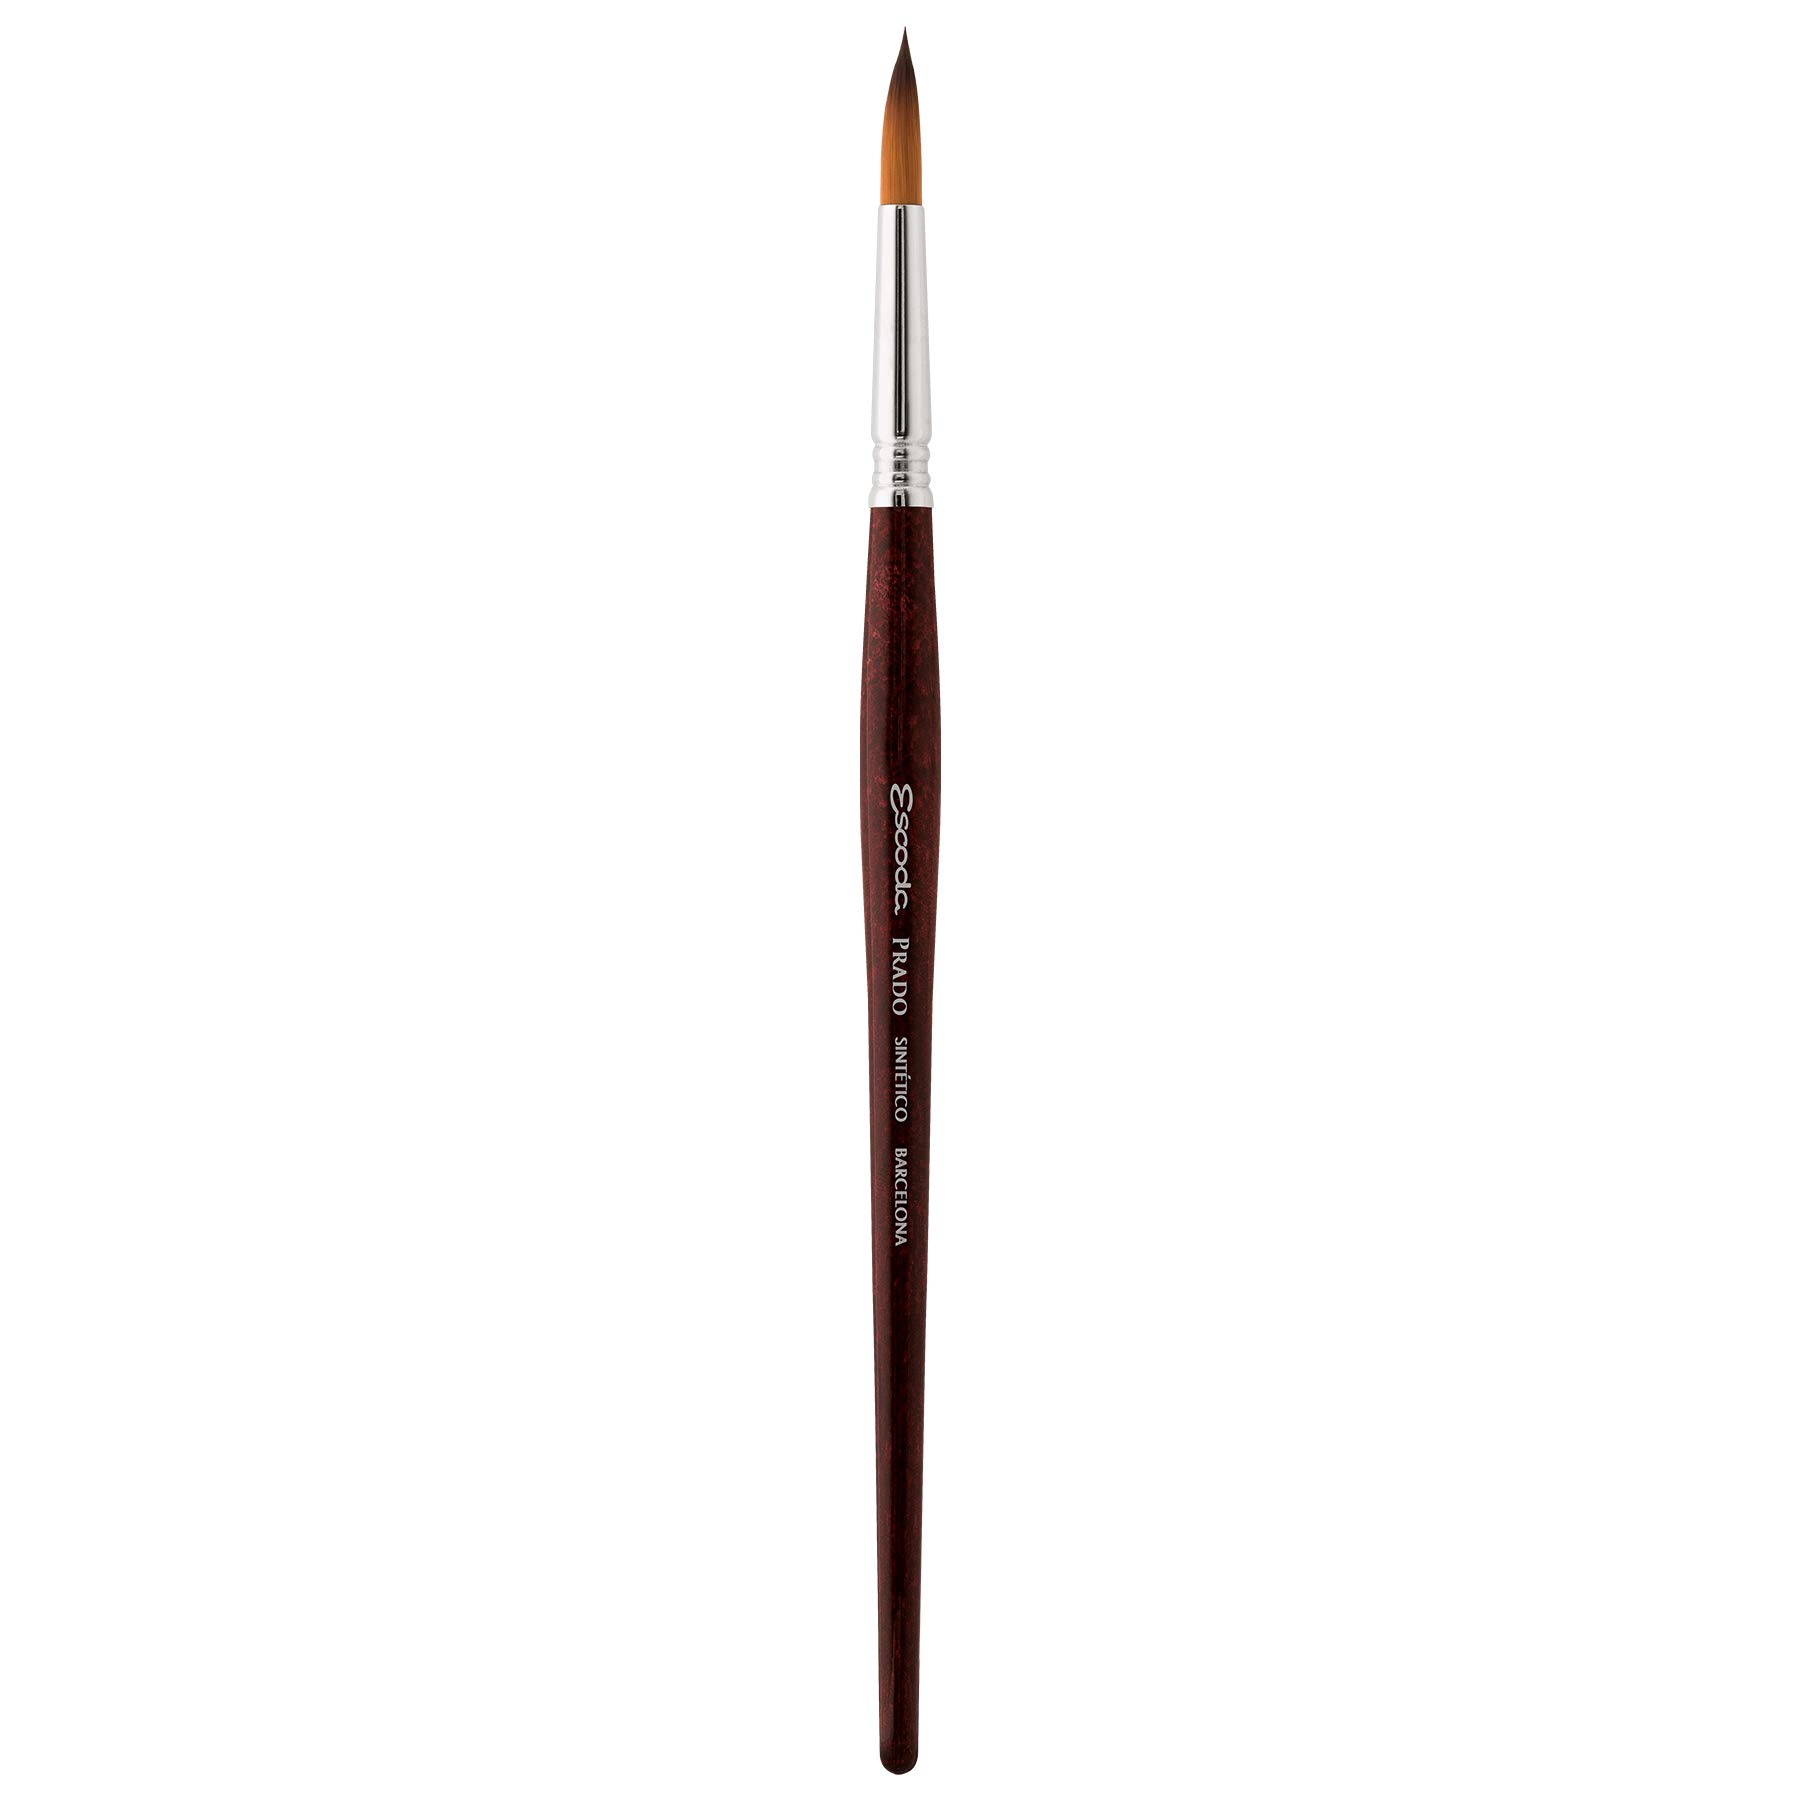 Speedball Art Products 1462-8 Escoda Prado Series Artist Watercolor & Acrylic Short Handle Round Paint Brush, Size 8, Synthetic Sable by Speedball